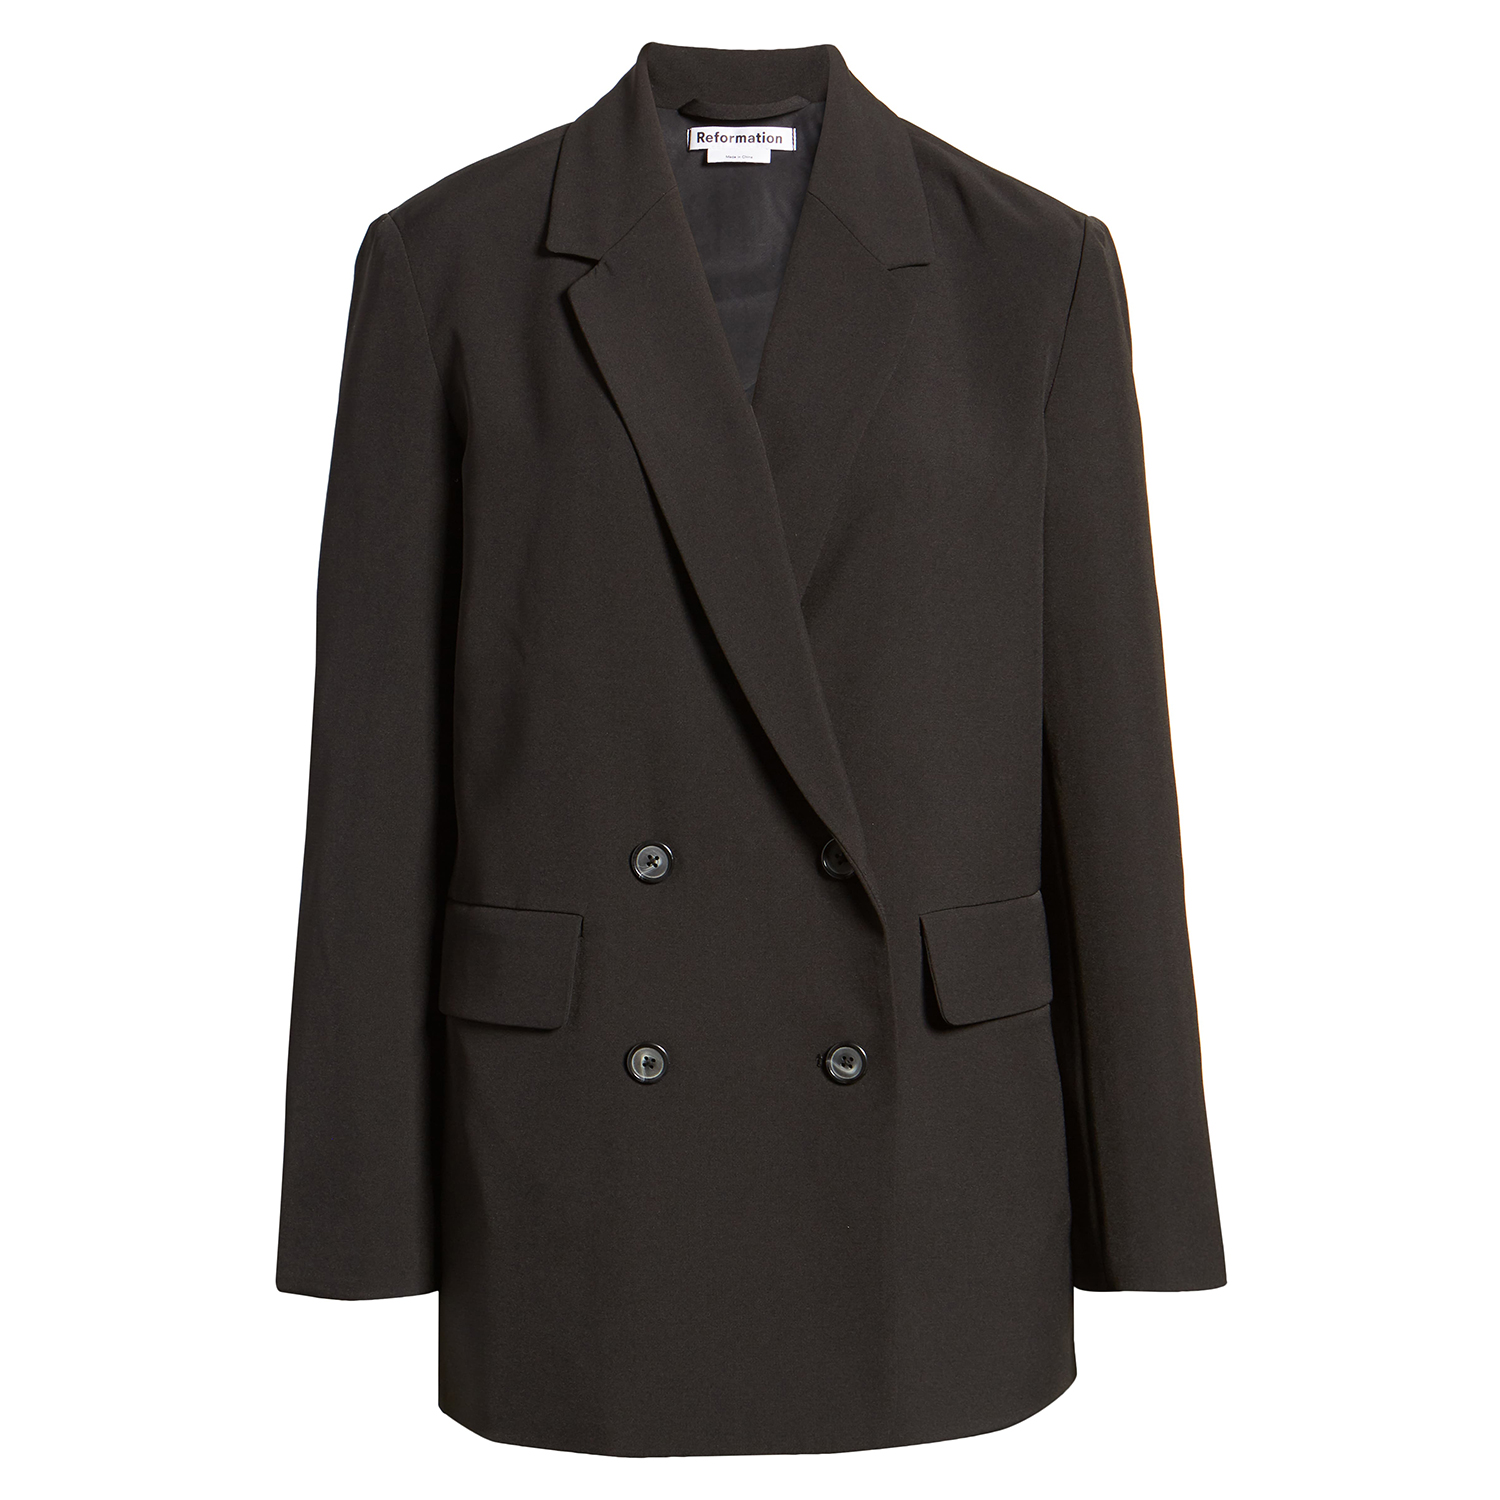 Reformation Double Breasted Blazer